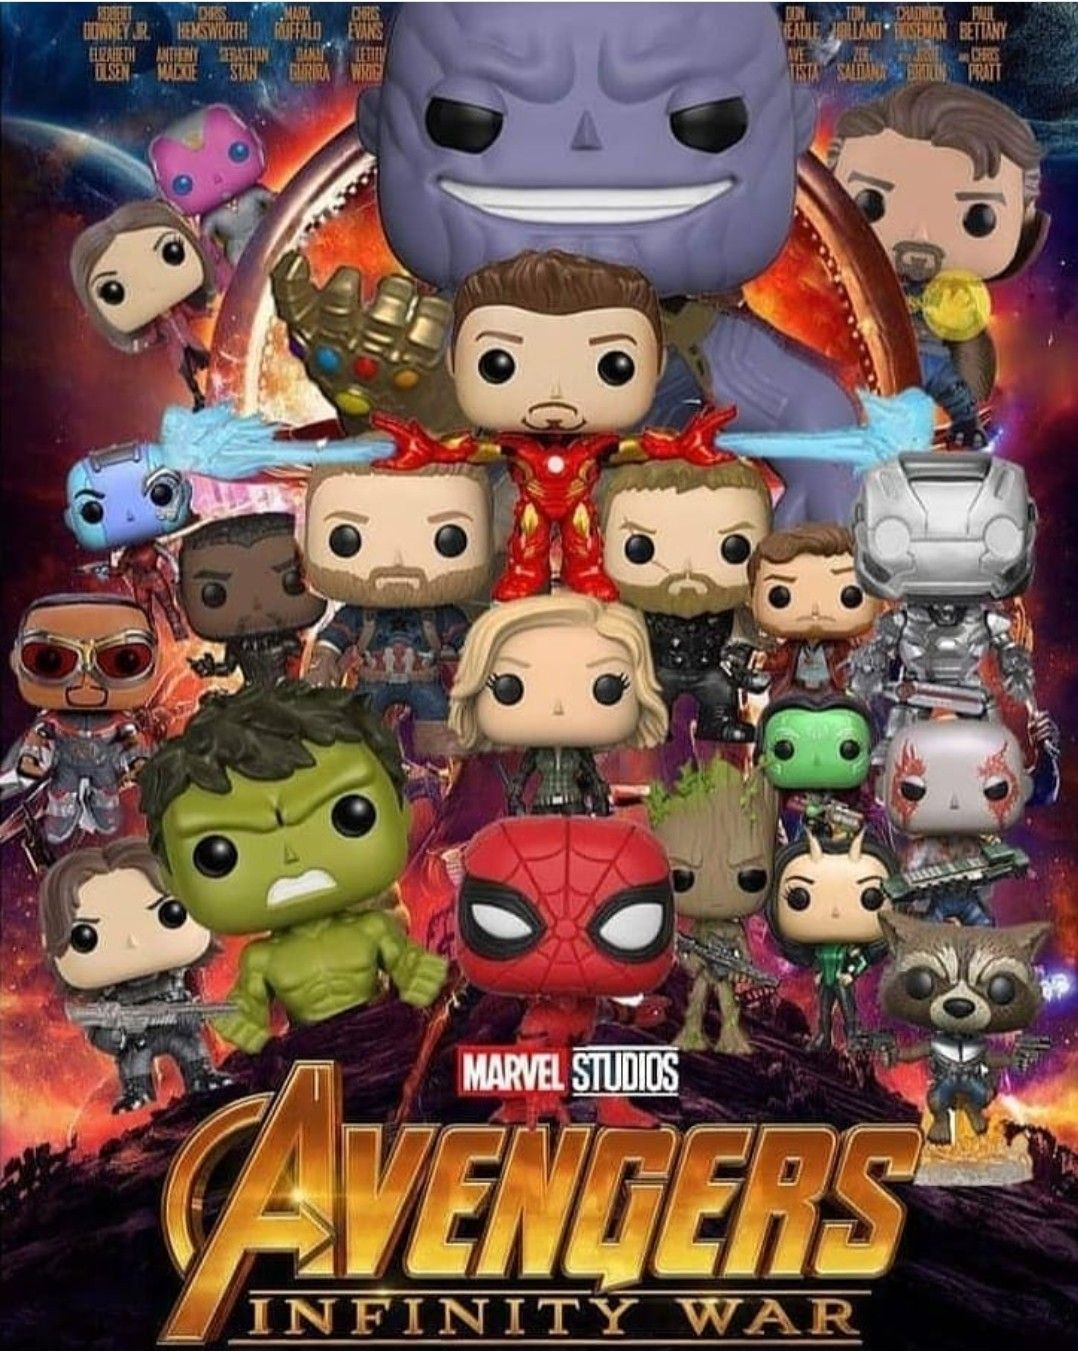 Pin By Wendolim Torres On Marvel Funko Pop Avengers Funko Pop Marvel Funko